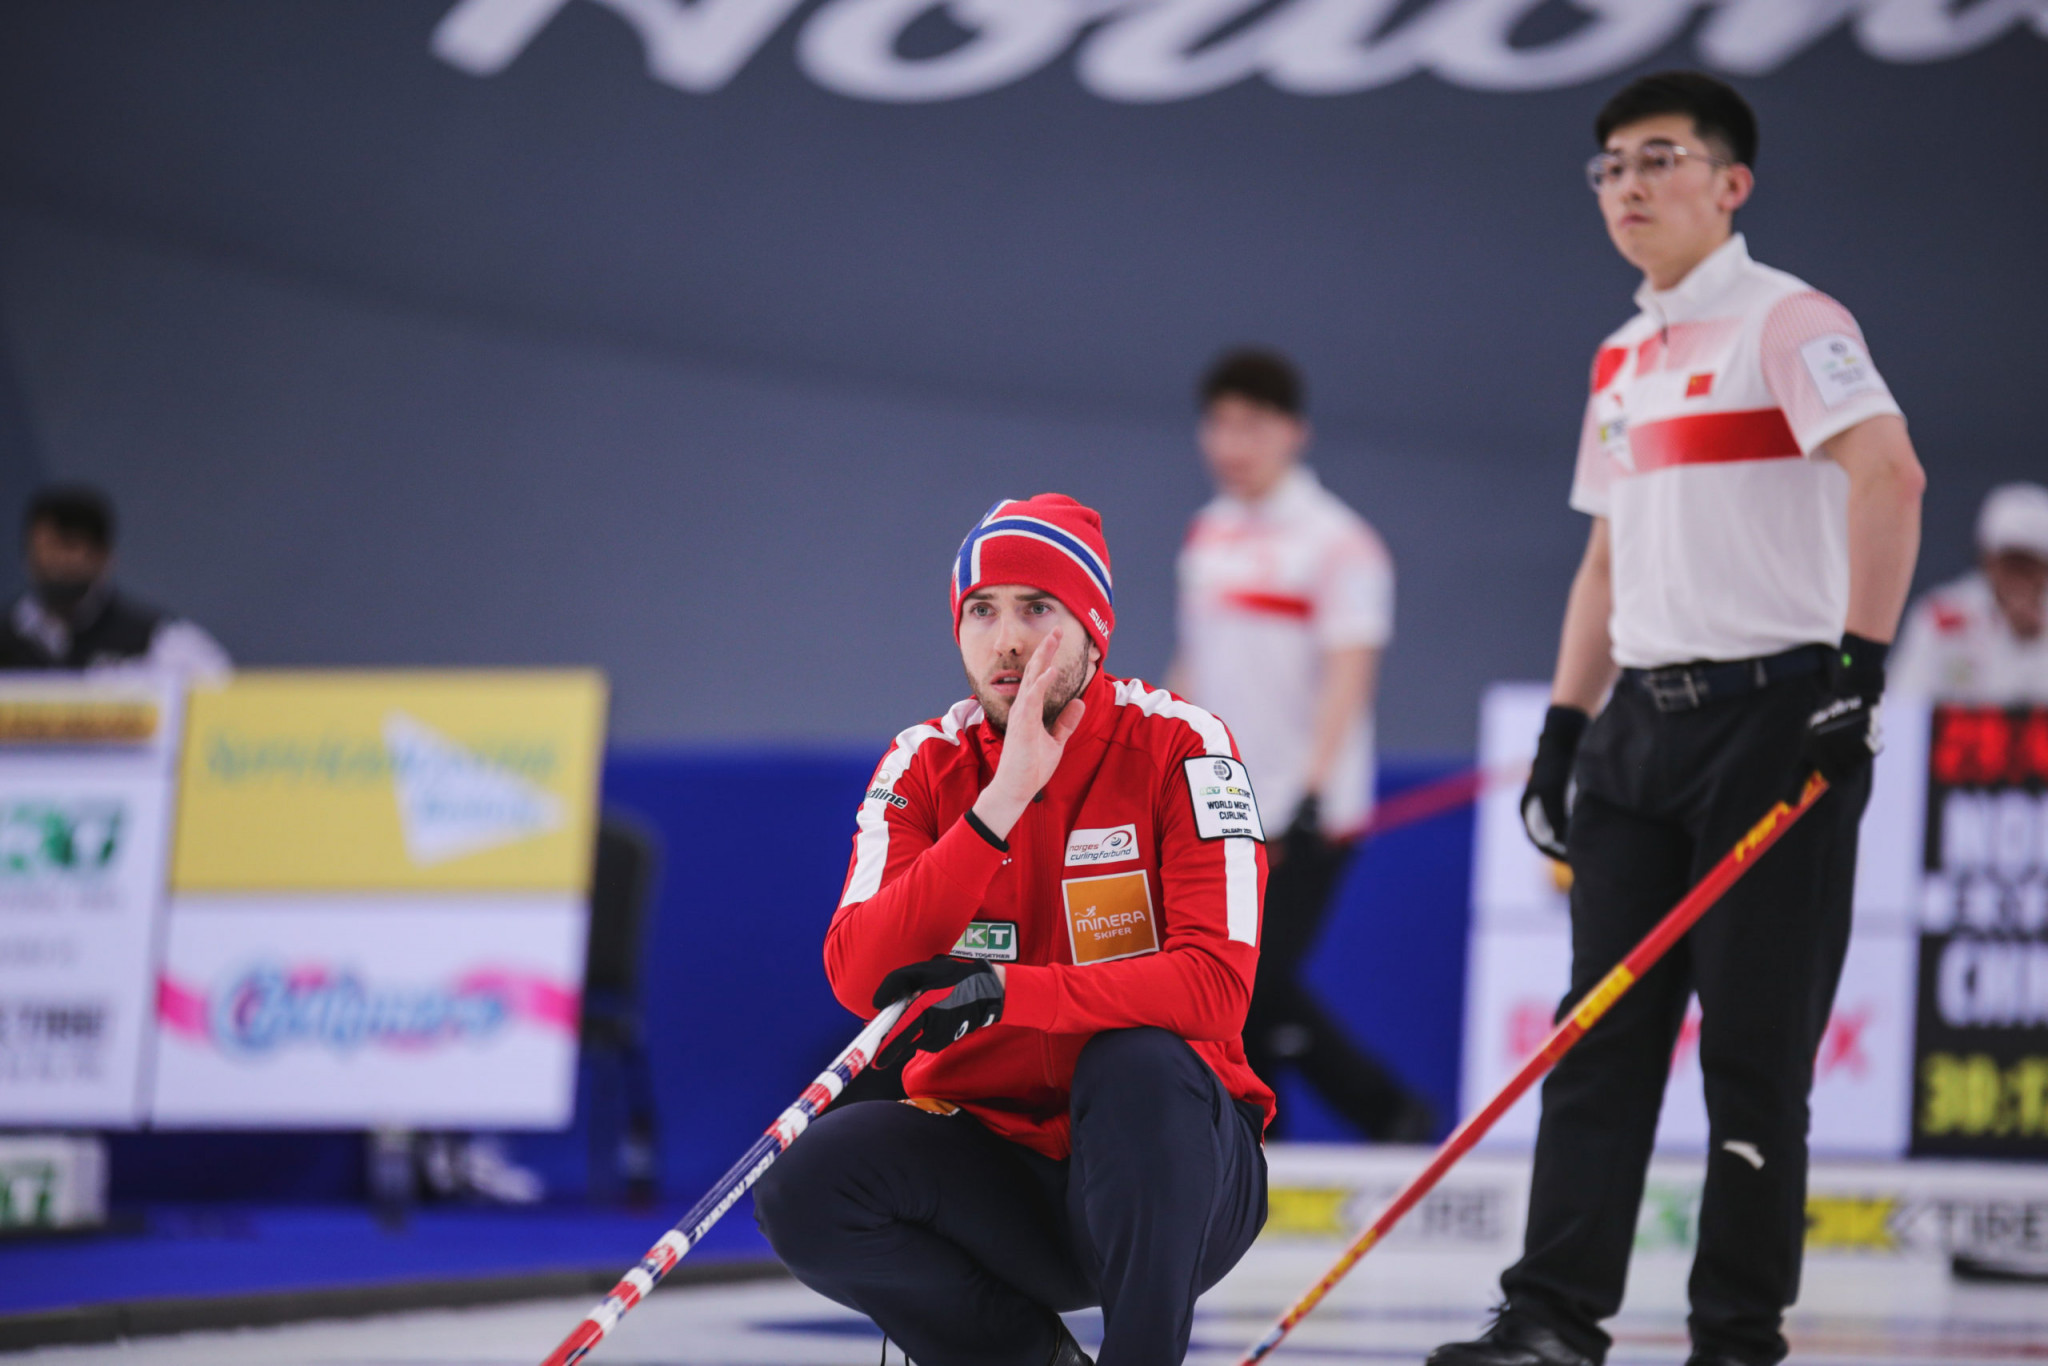 Unbeaten Norway go top on day two of World Men's Curling Championship